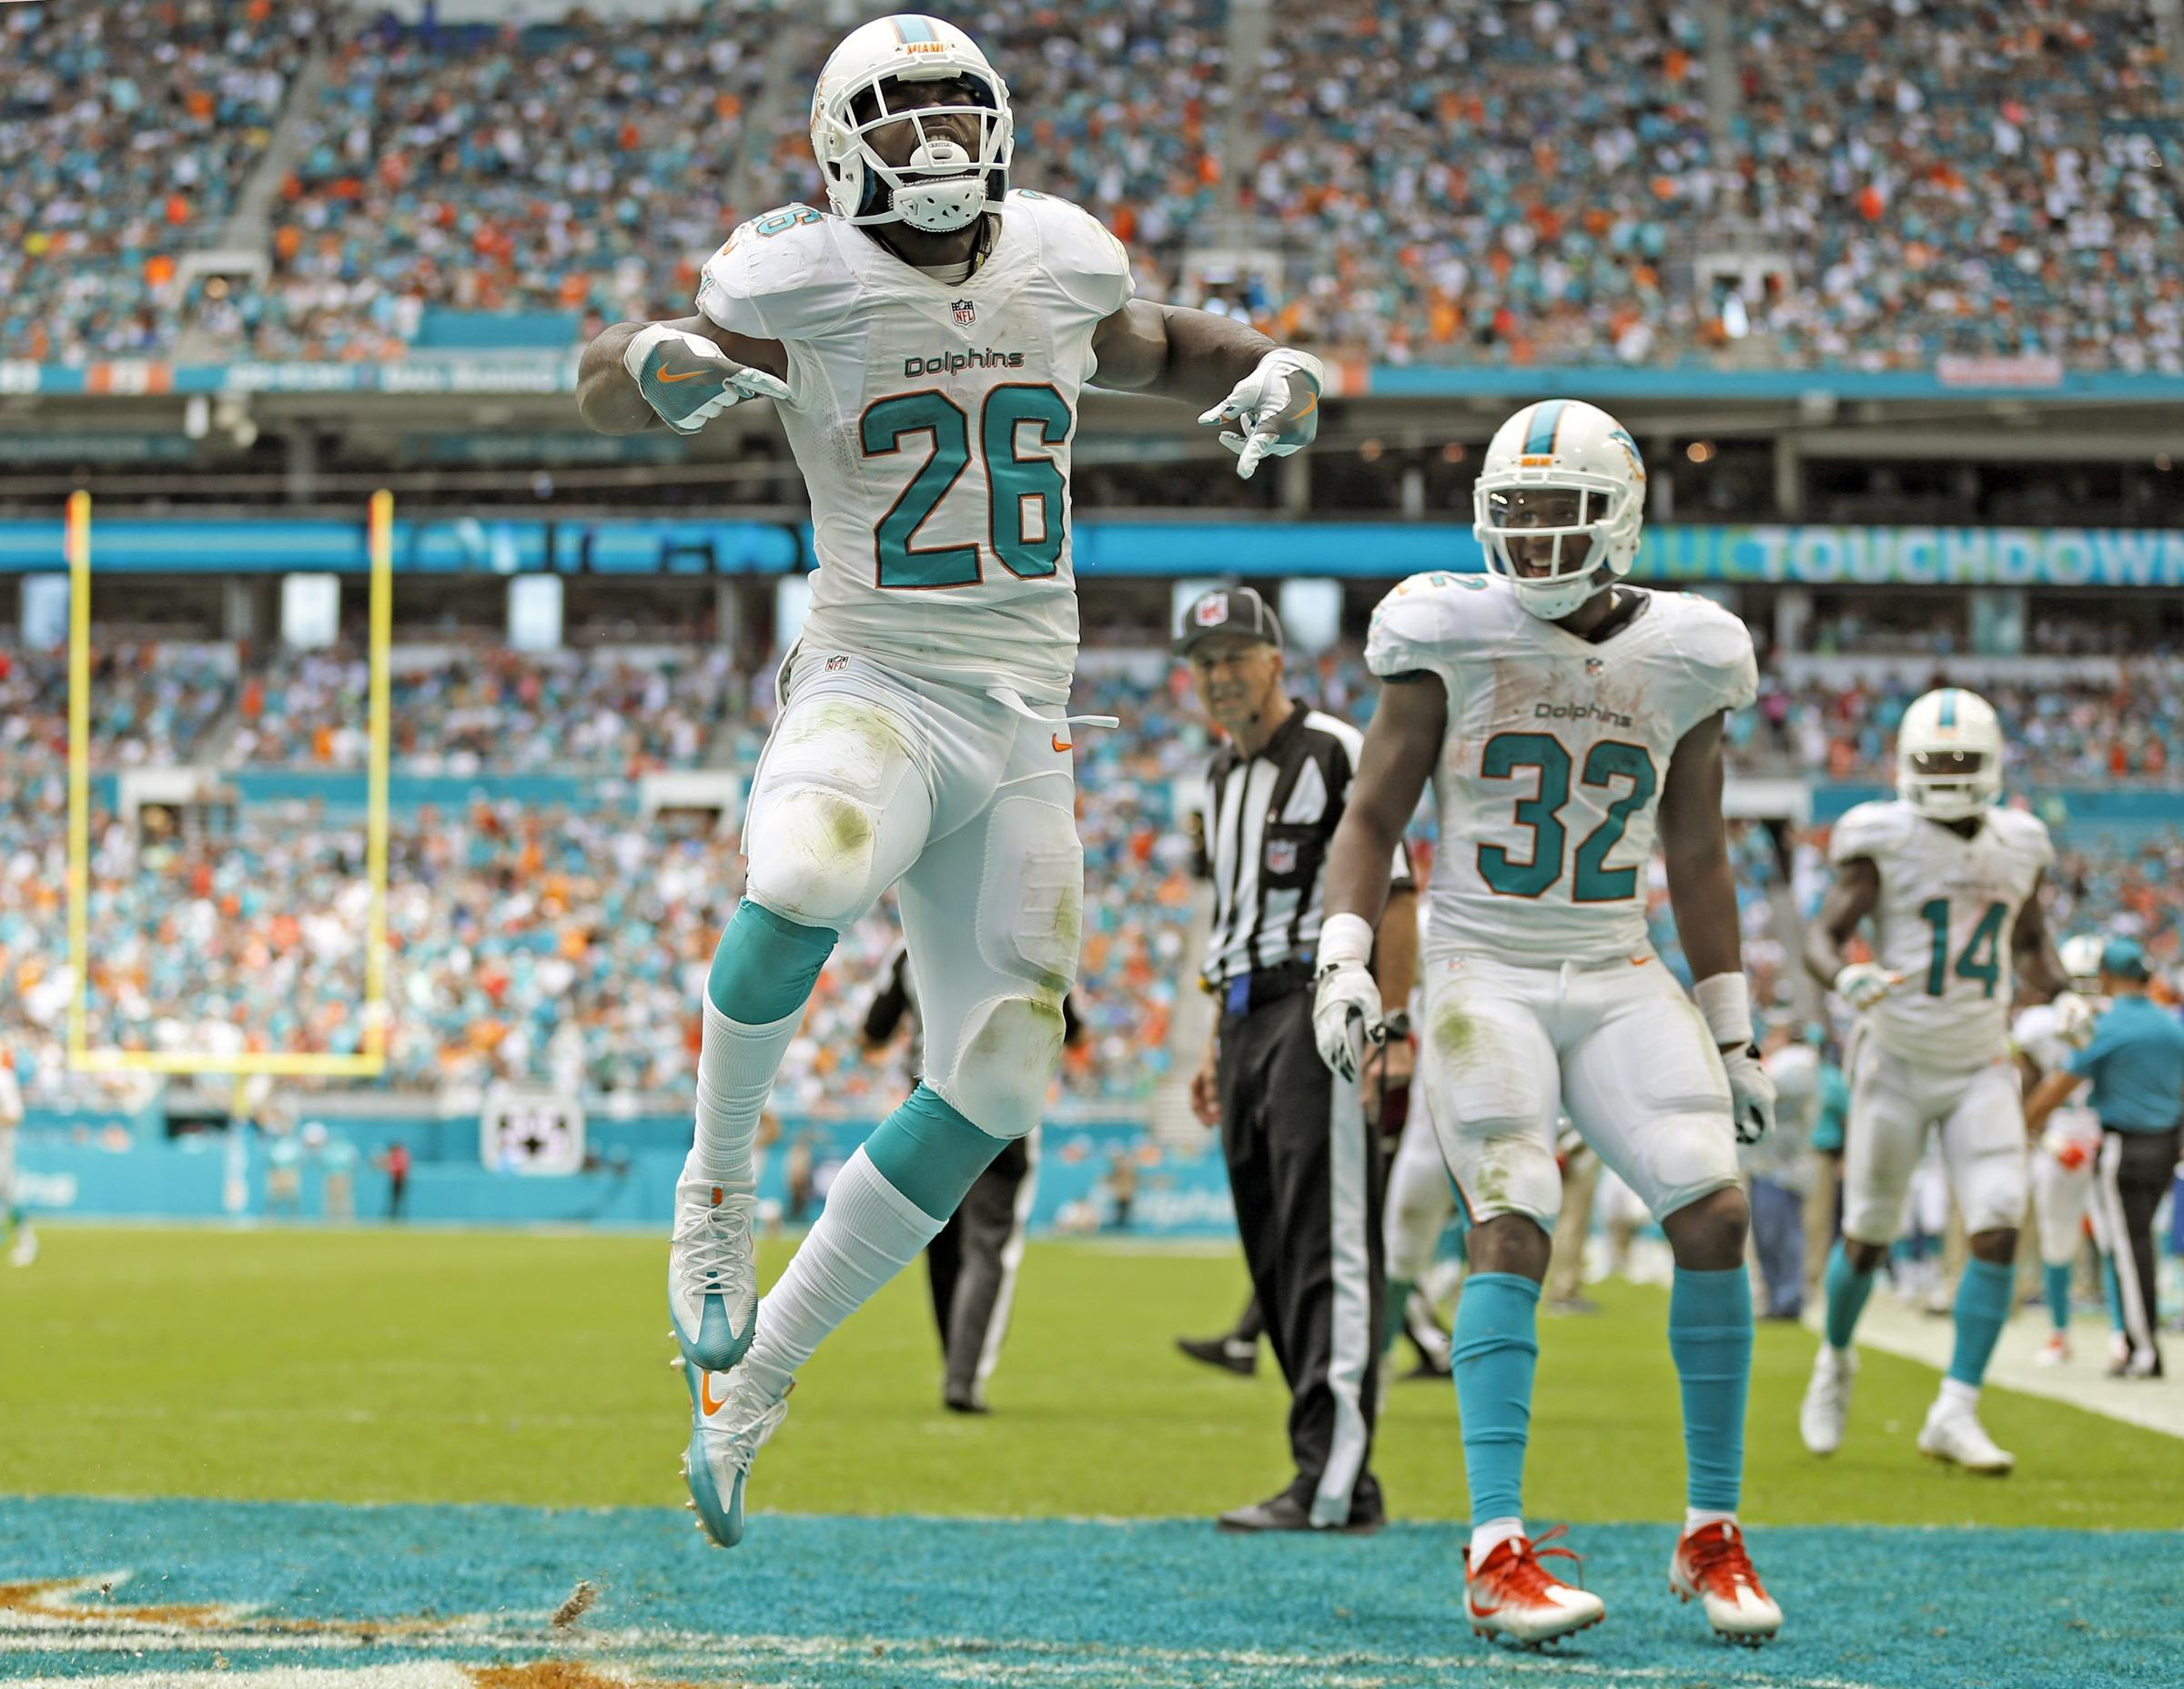 Dolphins_browns_football